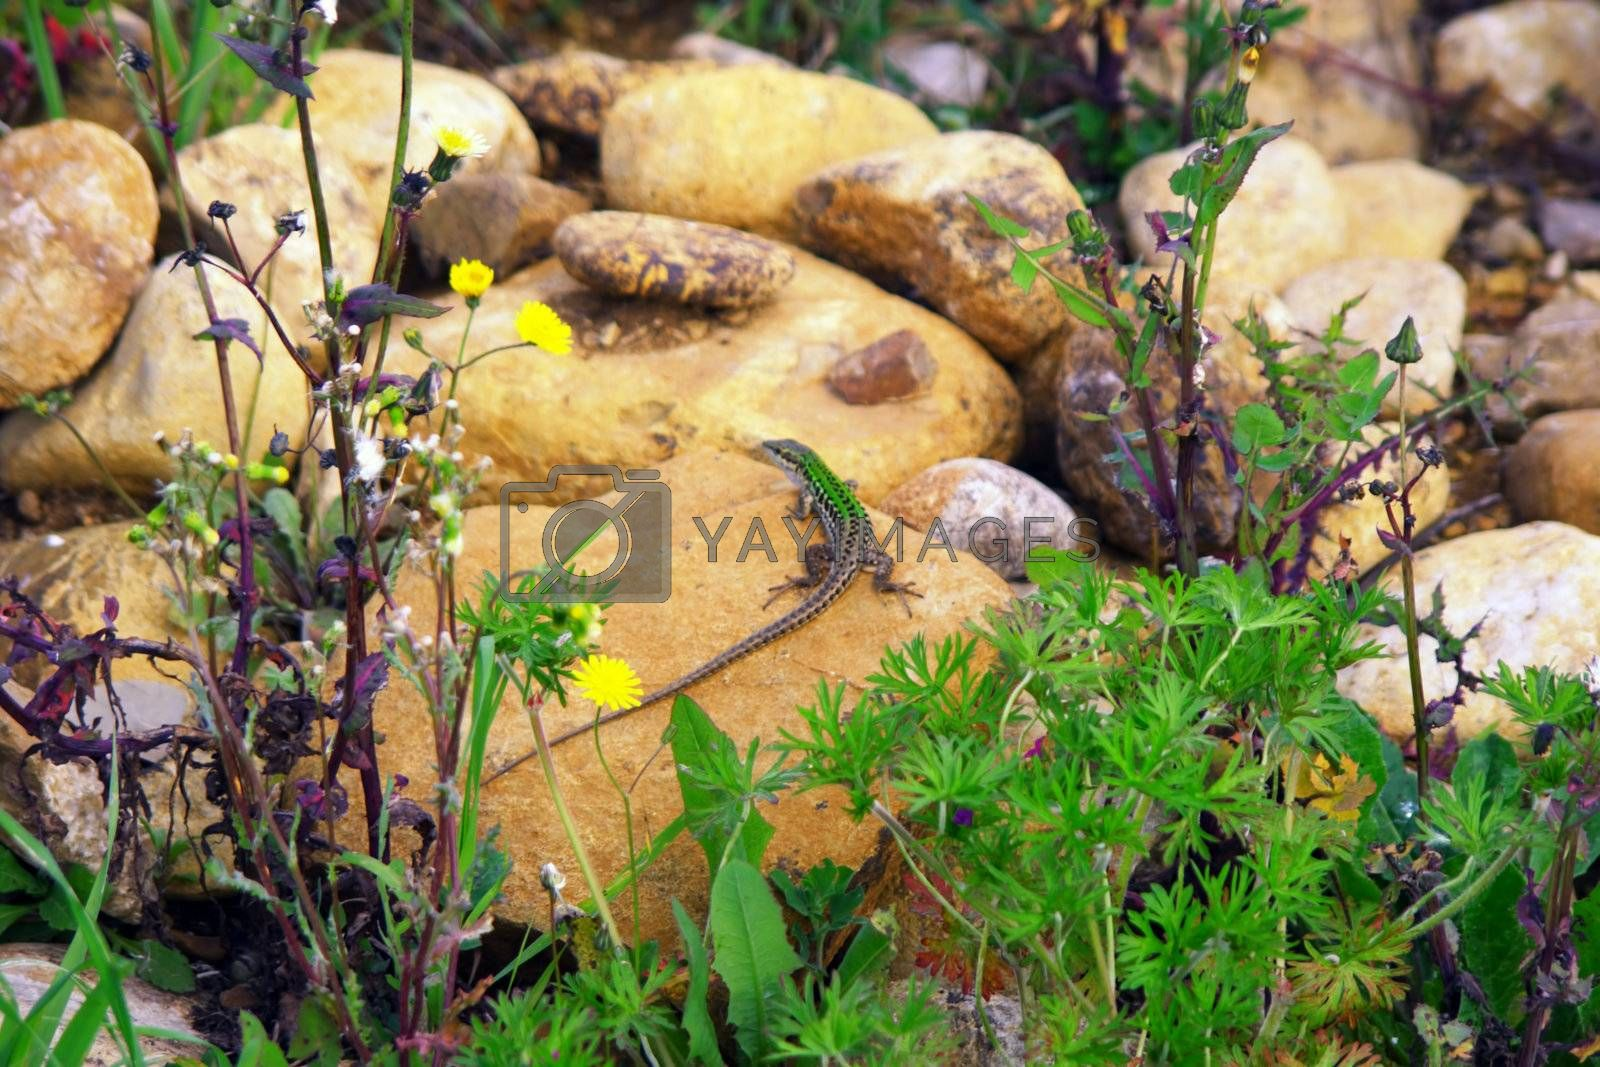 Lizard, wildlife, wild, ground, tail, sun, stone, rock, reptile, quick, kind, unassuming, macro, gray, green, lawn,